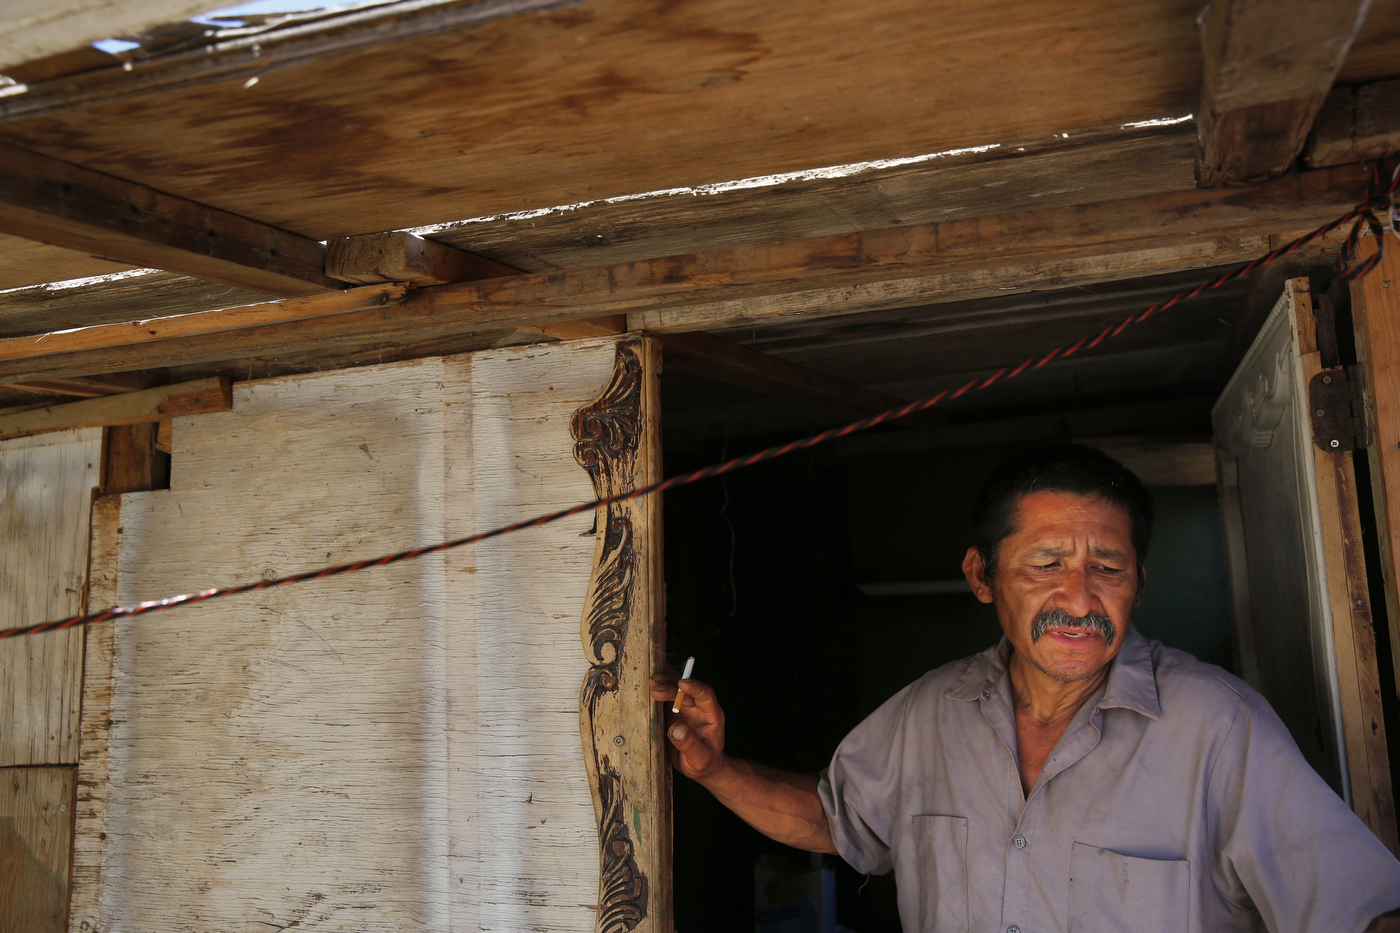 While trying to shelter from triple digit heat, Martín Hernandez Mena, 50, smokes a cigarette as he stands in the doorway of the home he built in the shantytown. Mena has lived for a year and a half in the canal bed. He moved after he could no longer afford rent in town because work was becoming more and more scarce.